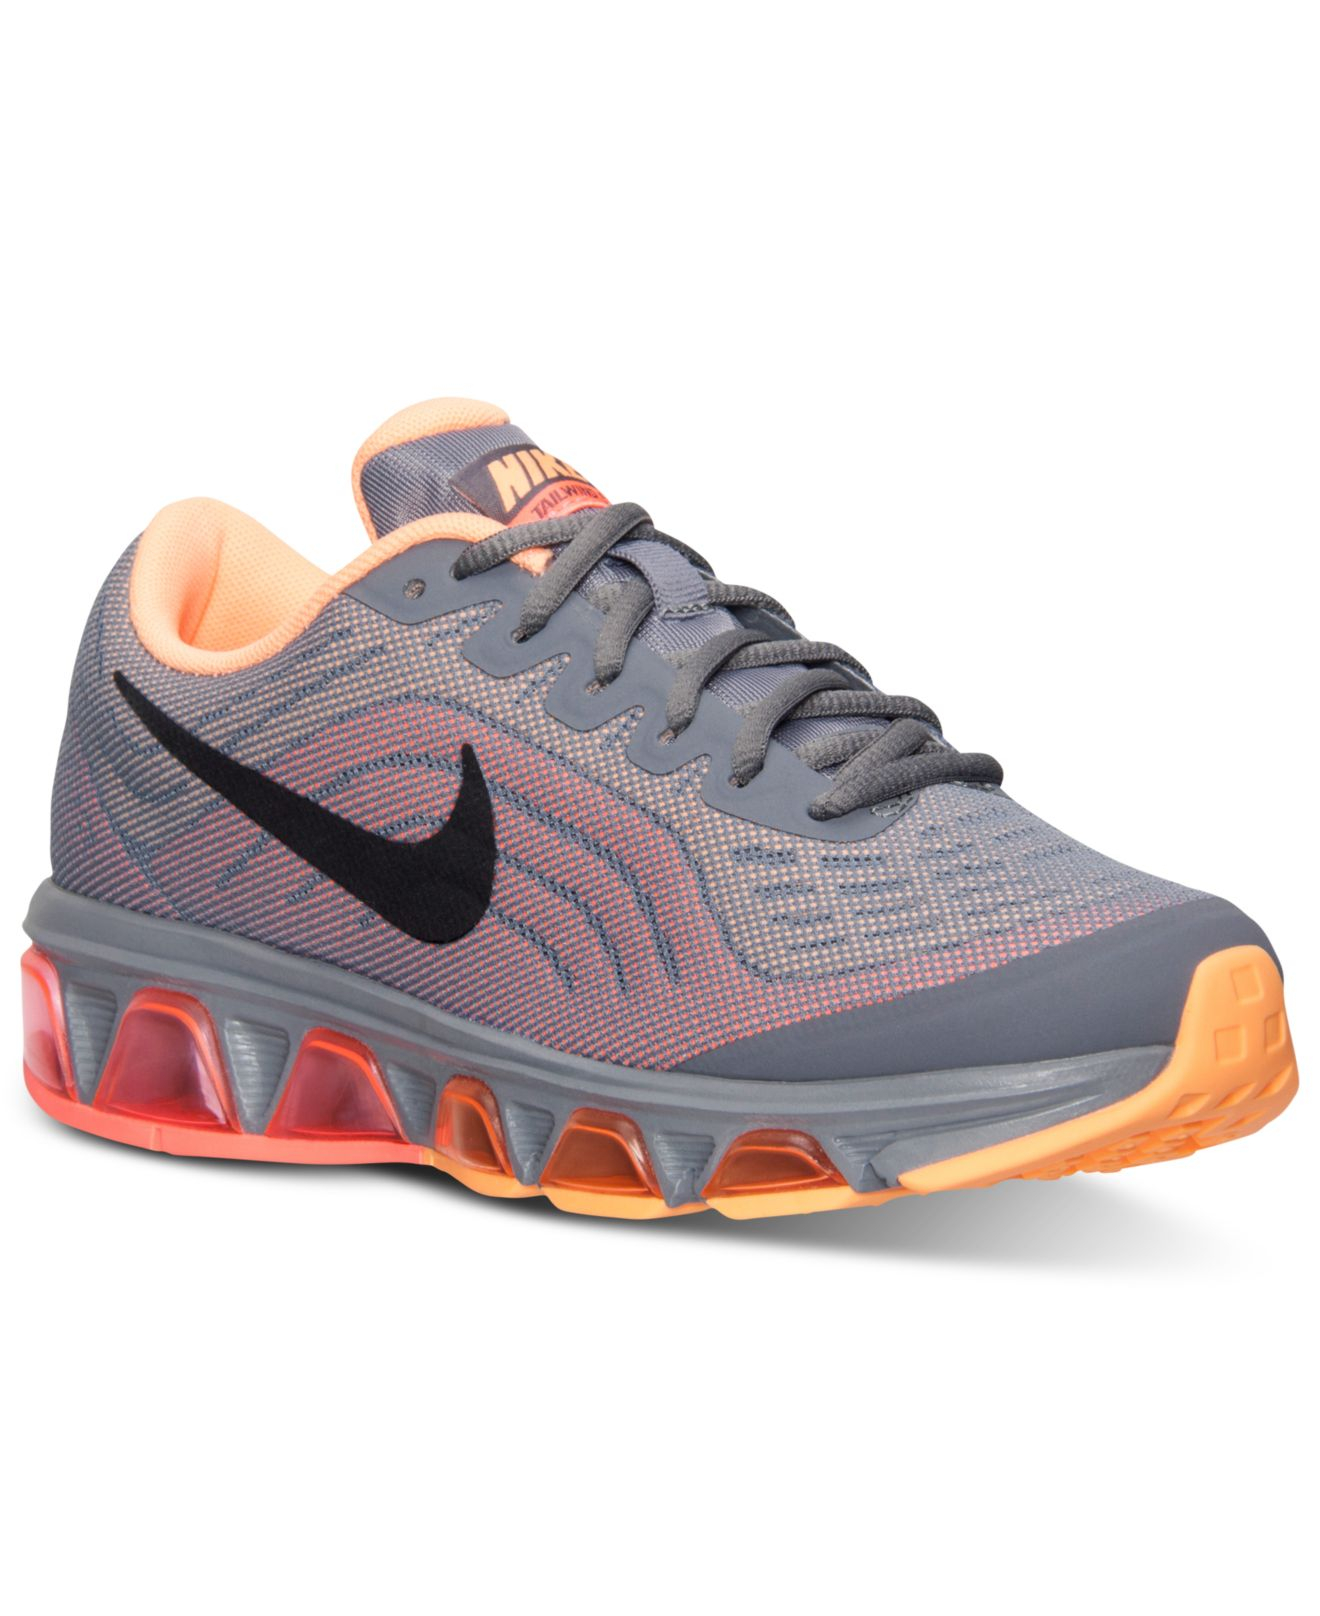 4d45c5293b3 ... sweden tailwind 6 womens running shoes gallery. previously sold at  macys womens nike air max